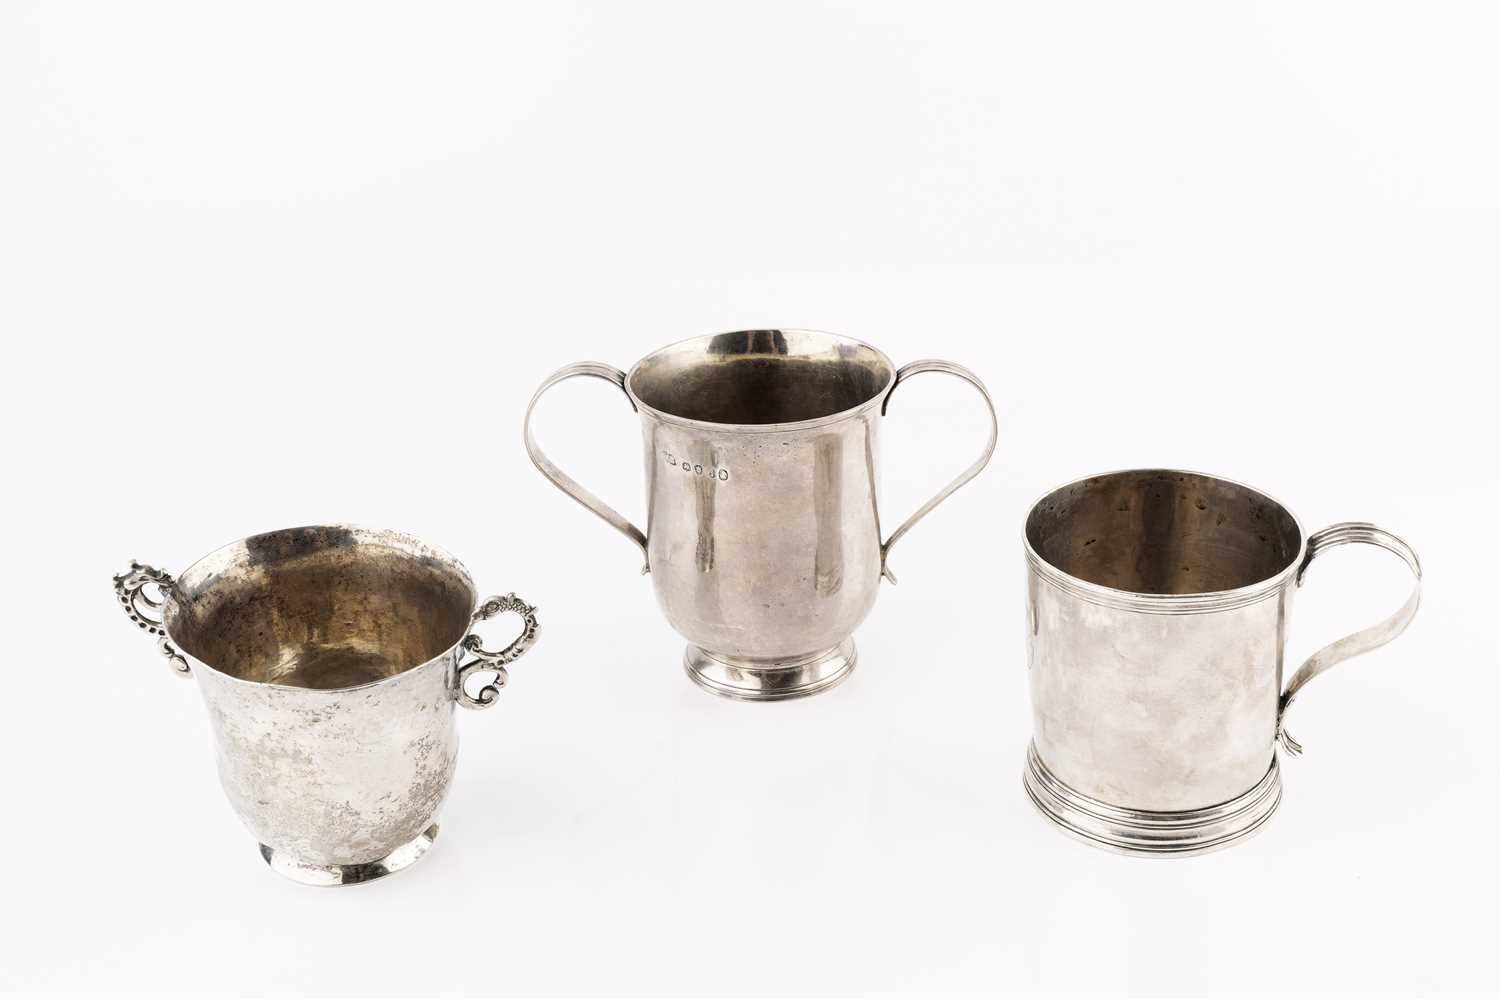 A George III silver twin handled cup, with reeded strap handles, by William Bateman I, London